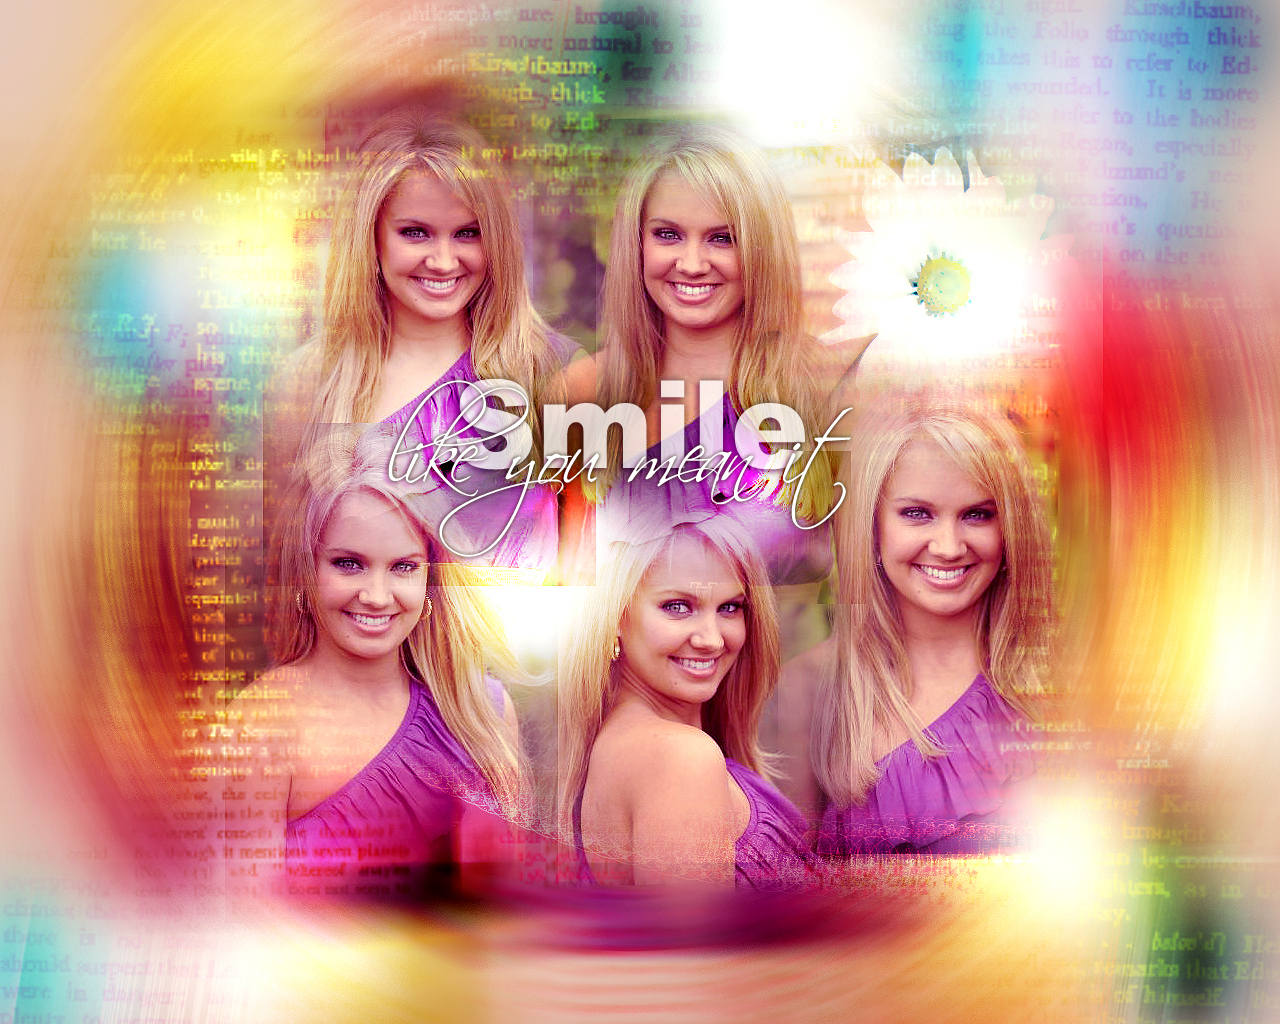 Tiffany Thornton - Wallpaper Actress